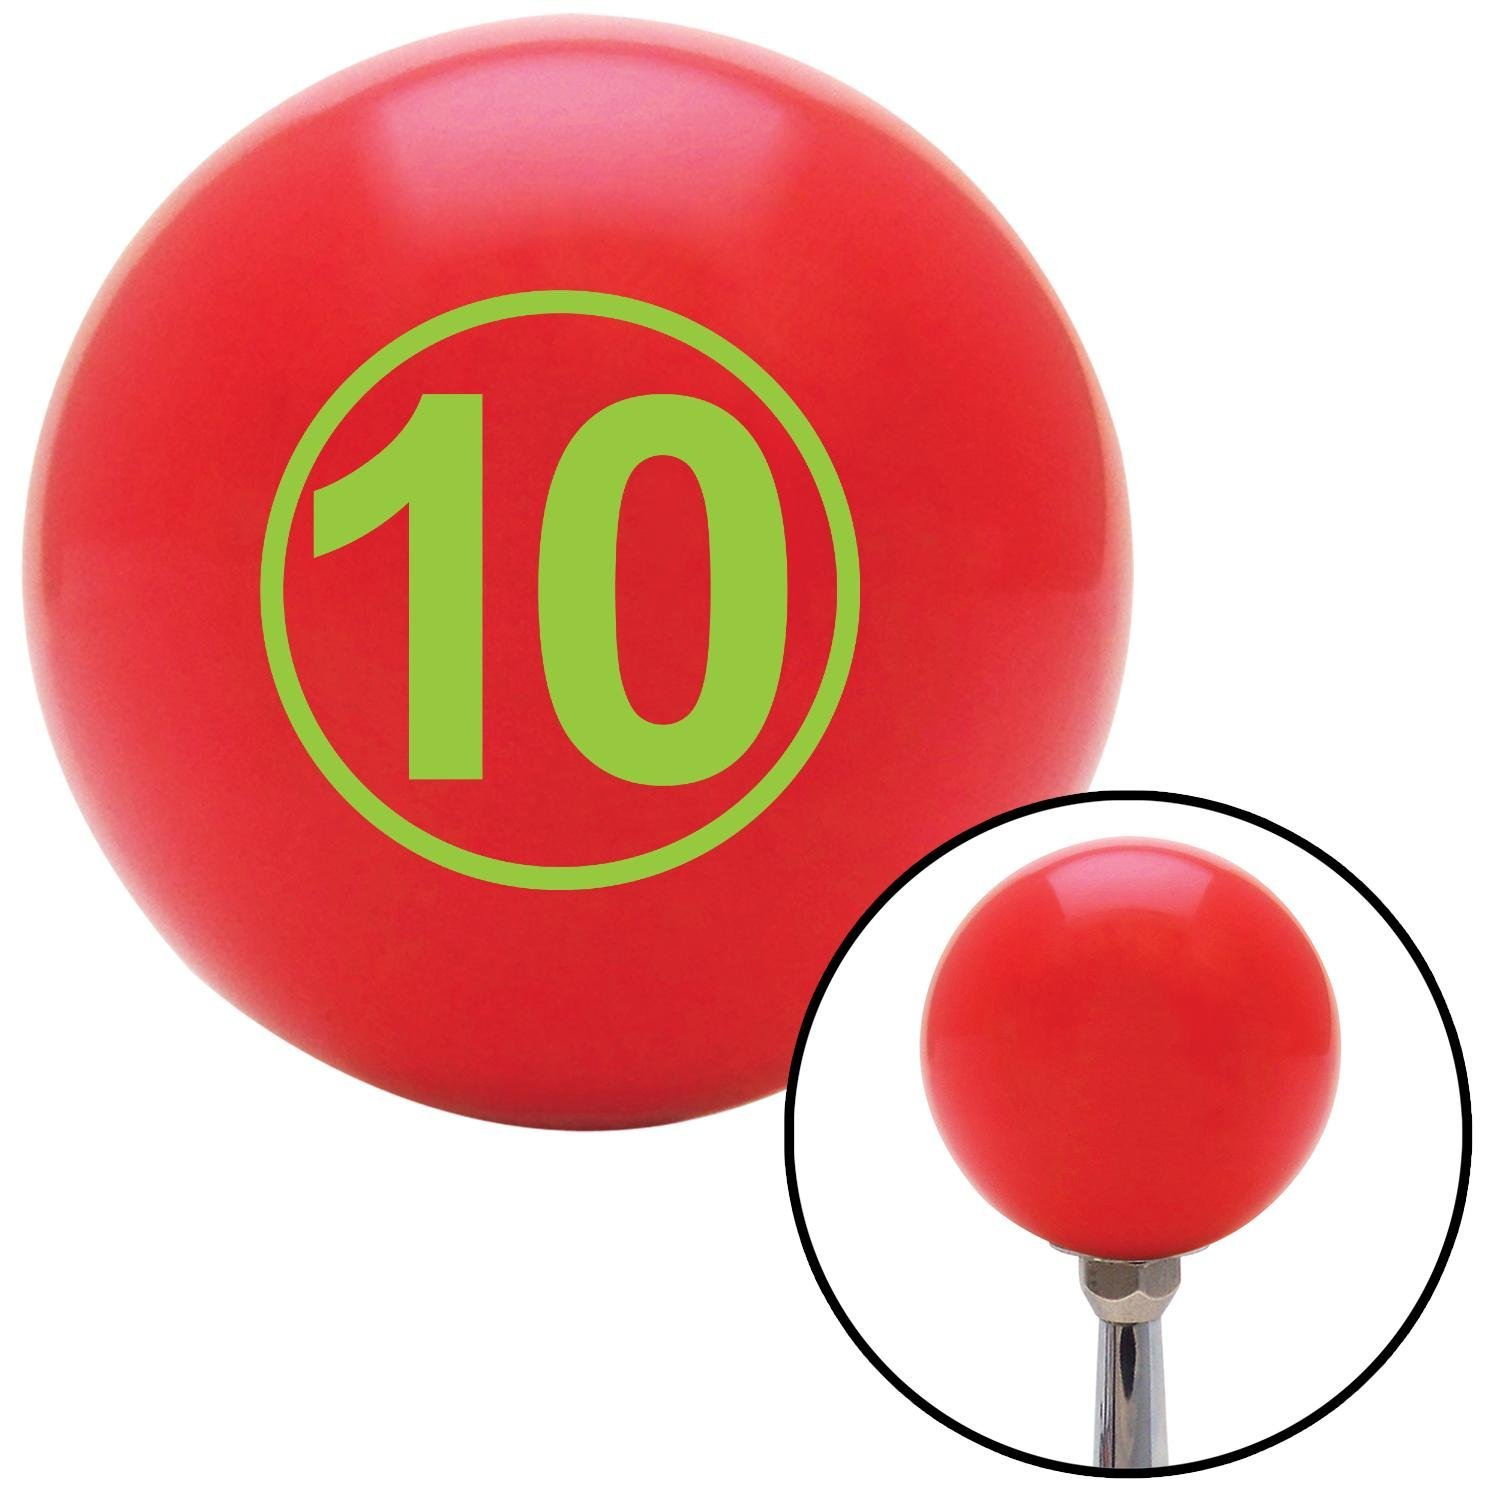 Green Ball 10 American Shifter 94435 Red Shift Knob with M16 x 1.5 Insert